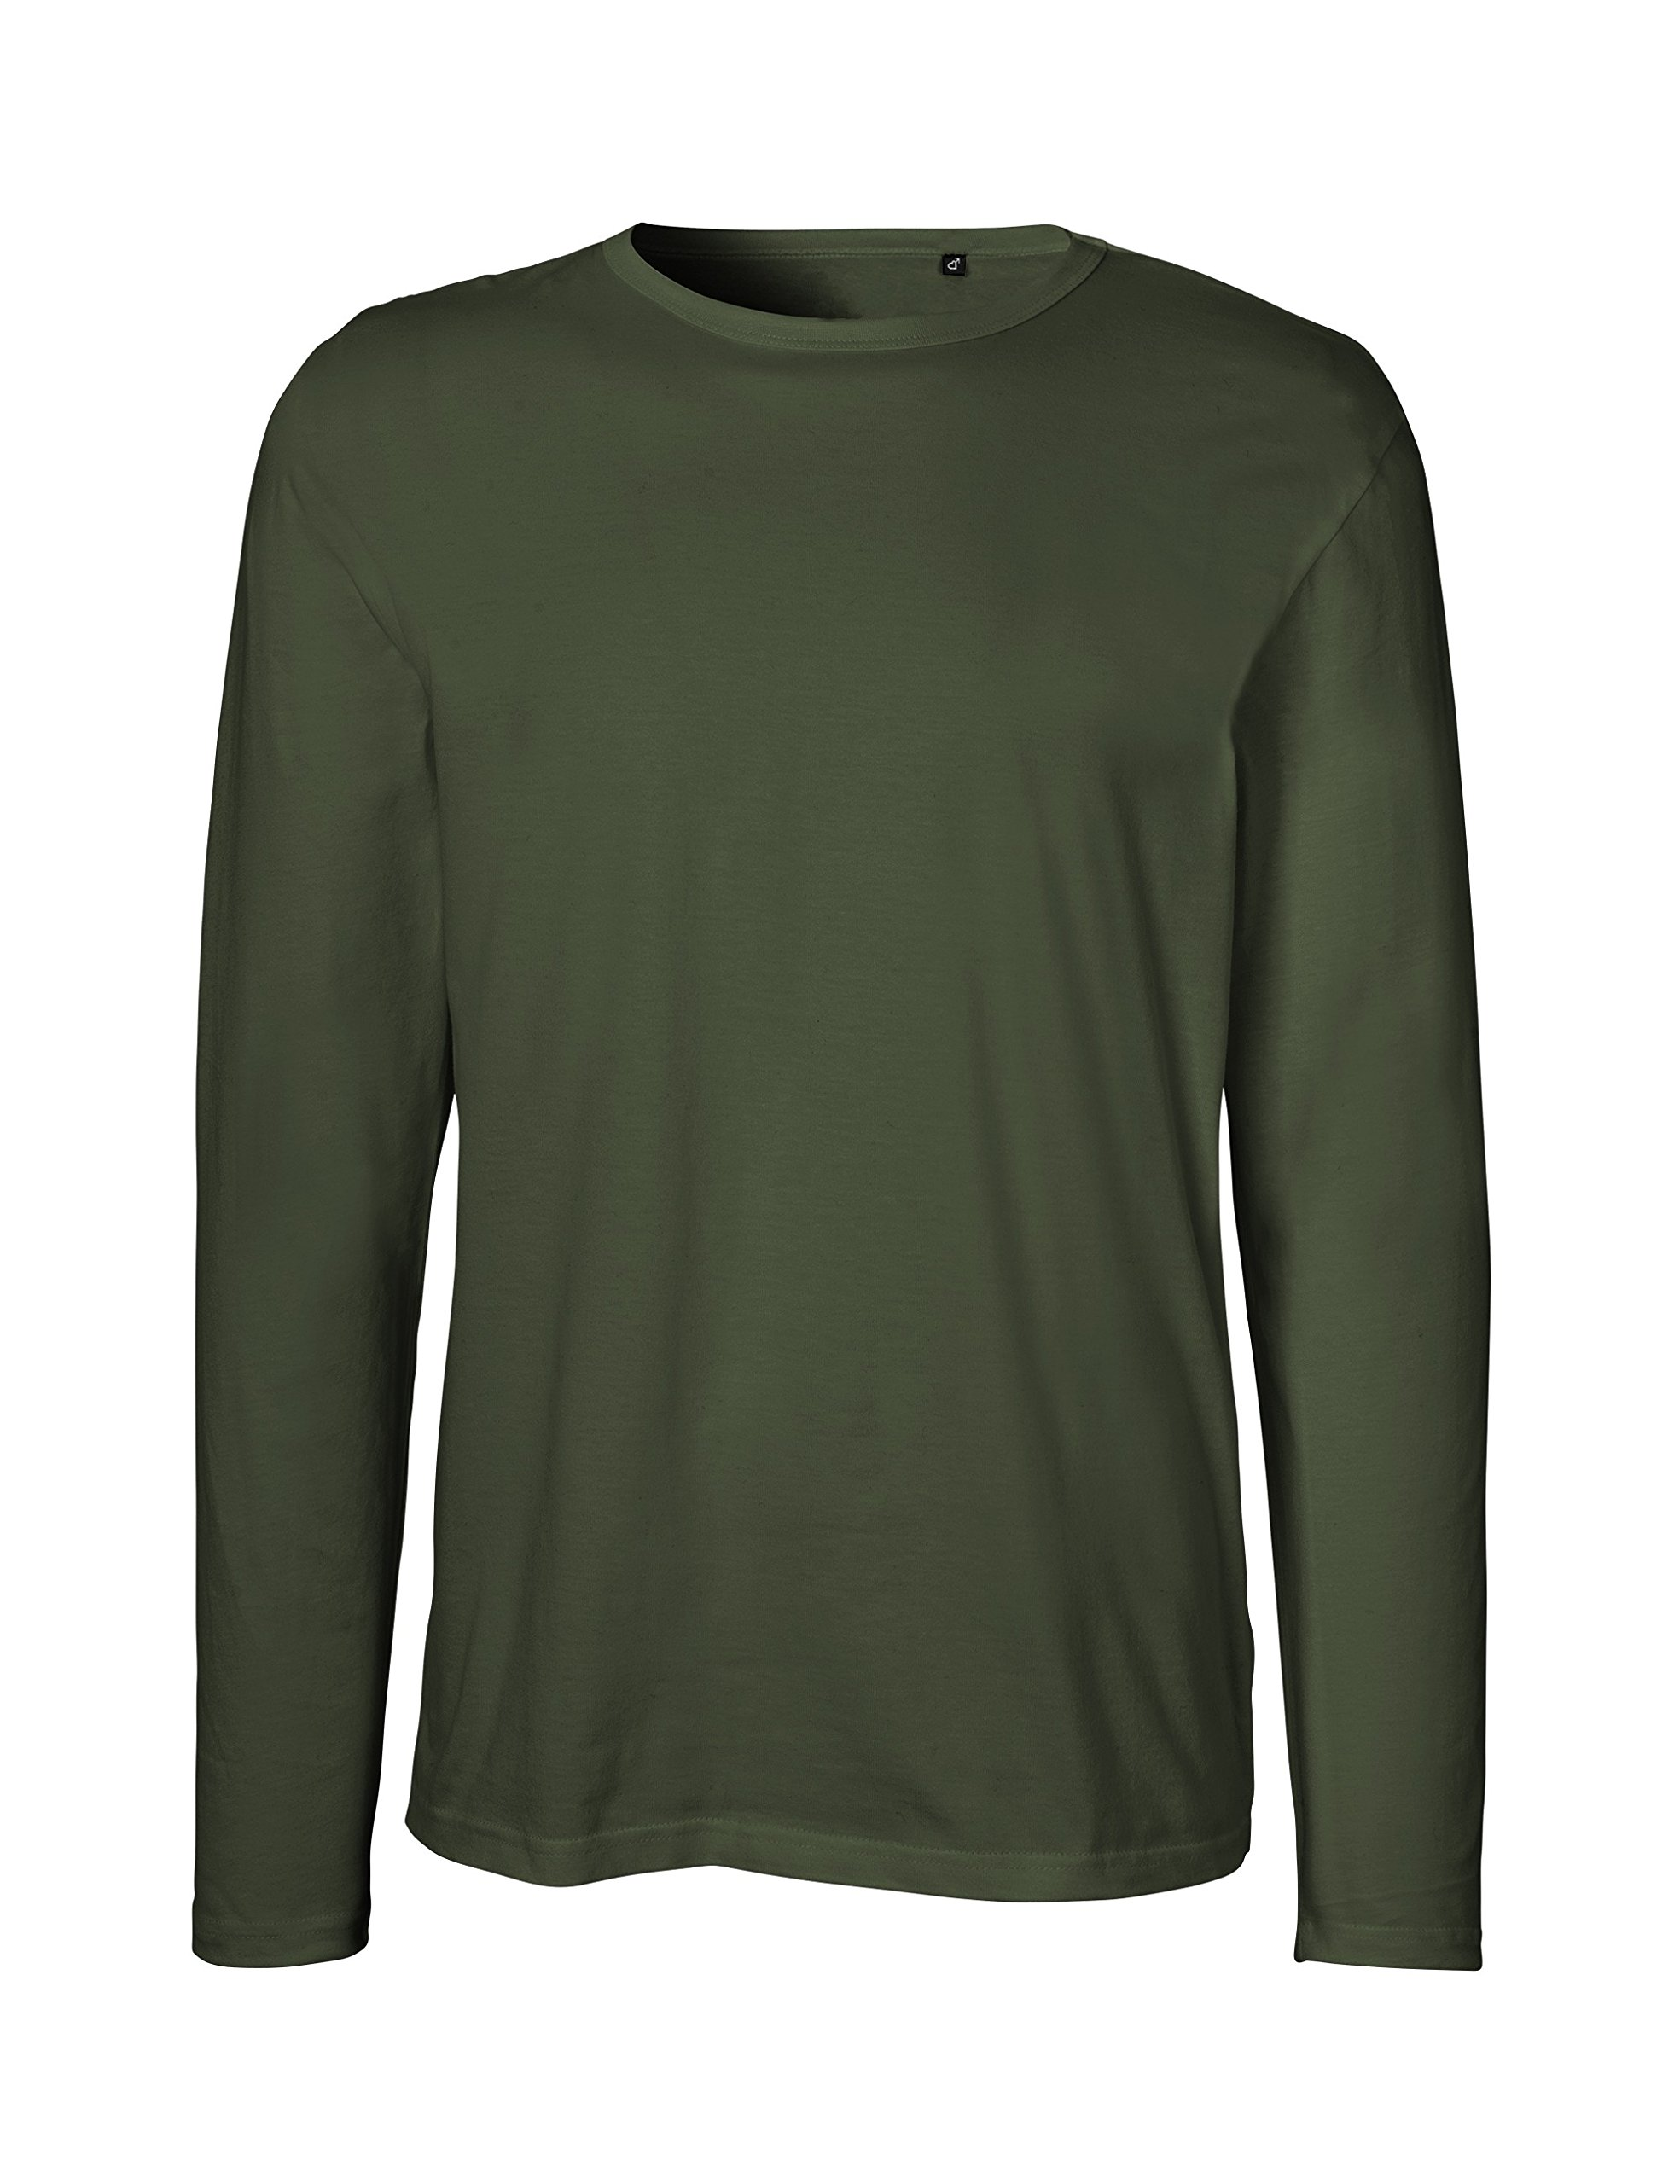 Green Cat Neutral Mens Long Sleeve T-Shirt, 100% Organic Cotton and Fairtrade Certified, Color Military, Size L